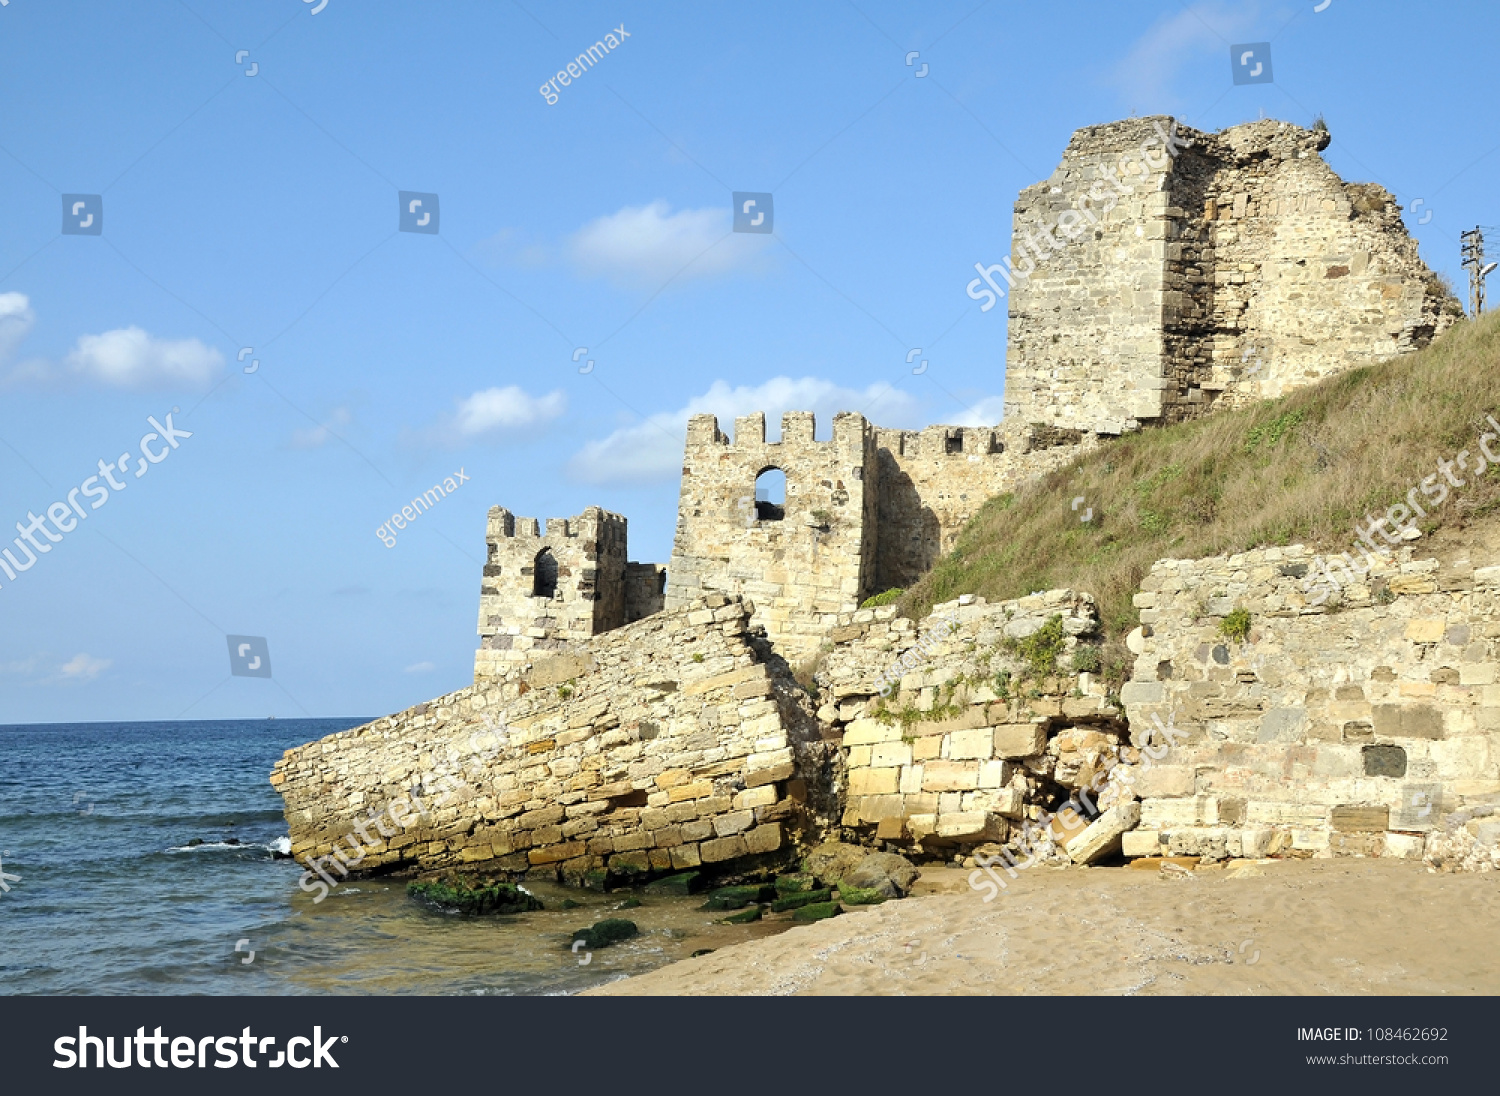 Sinop Castle. At The Tip Of The Black Sea In Turkey. Stock ...